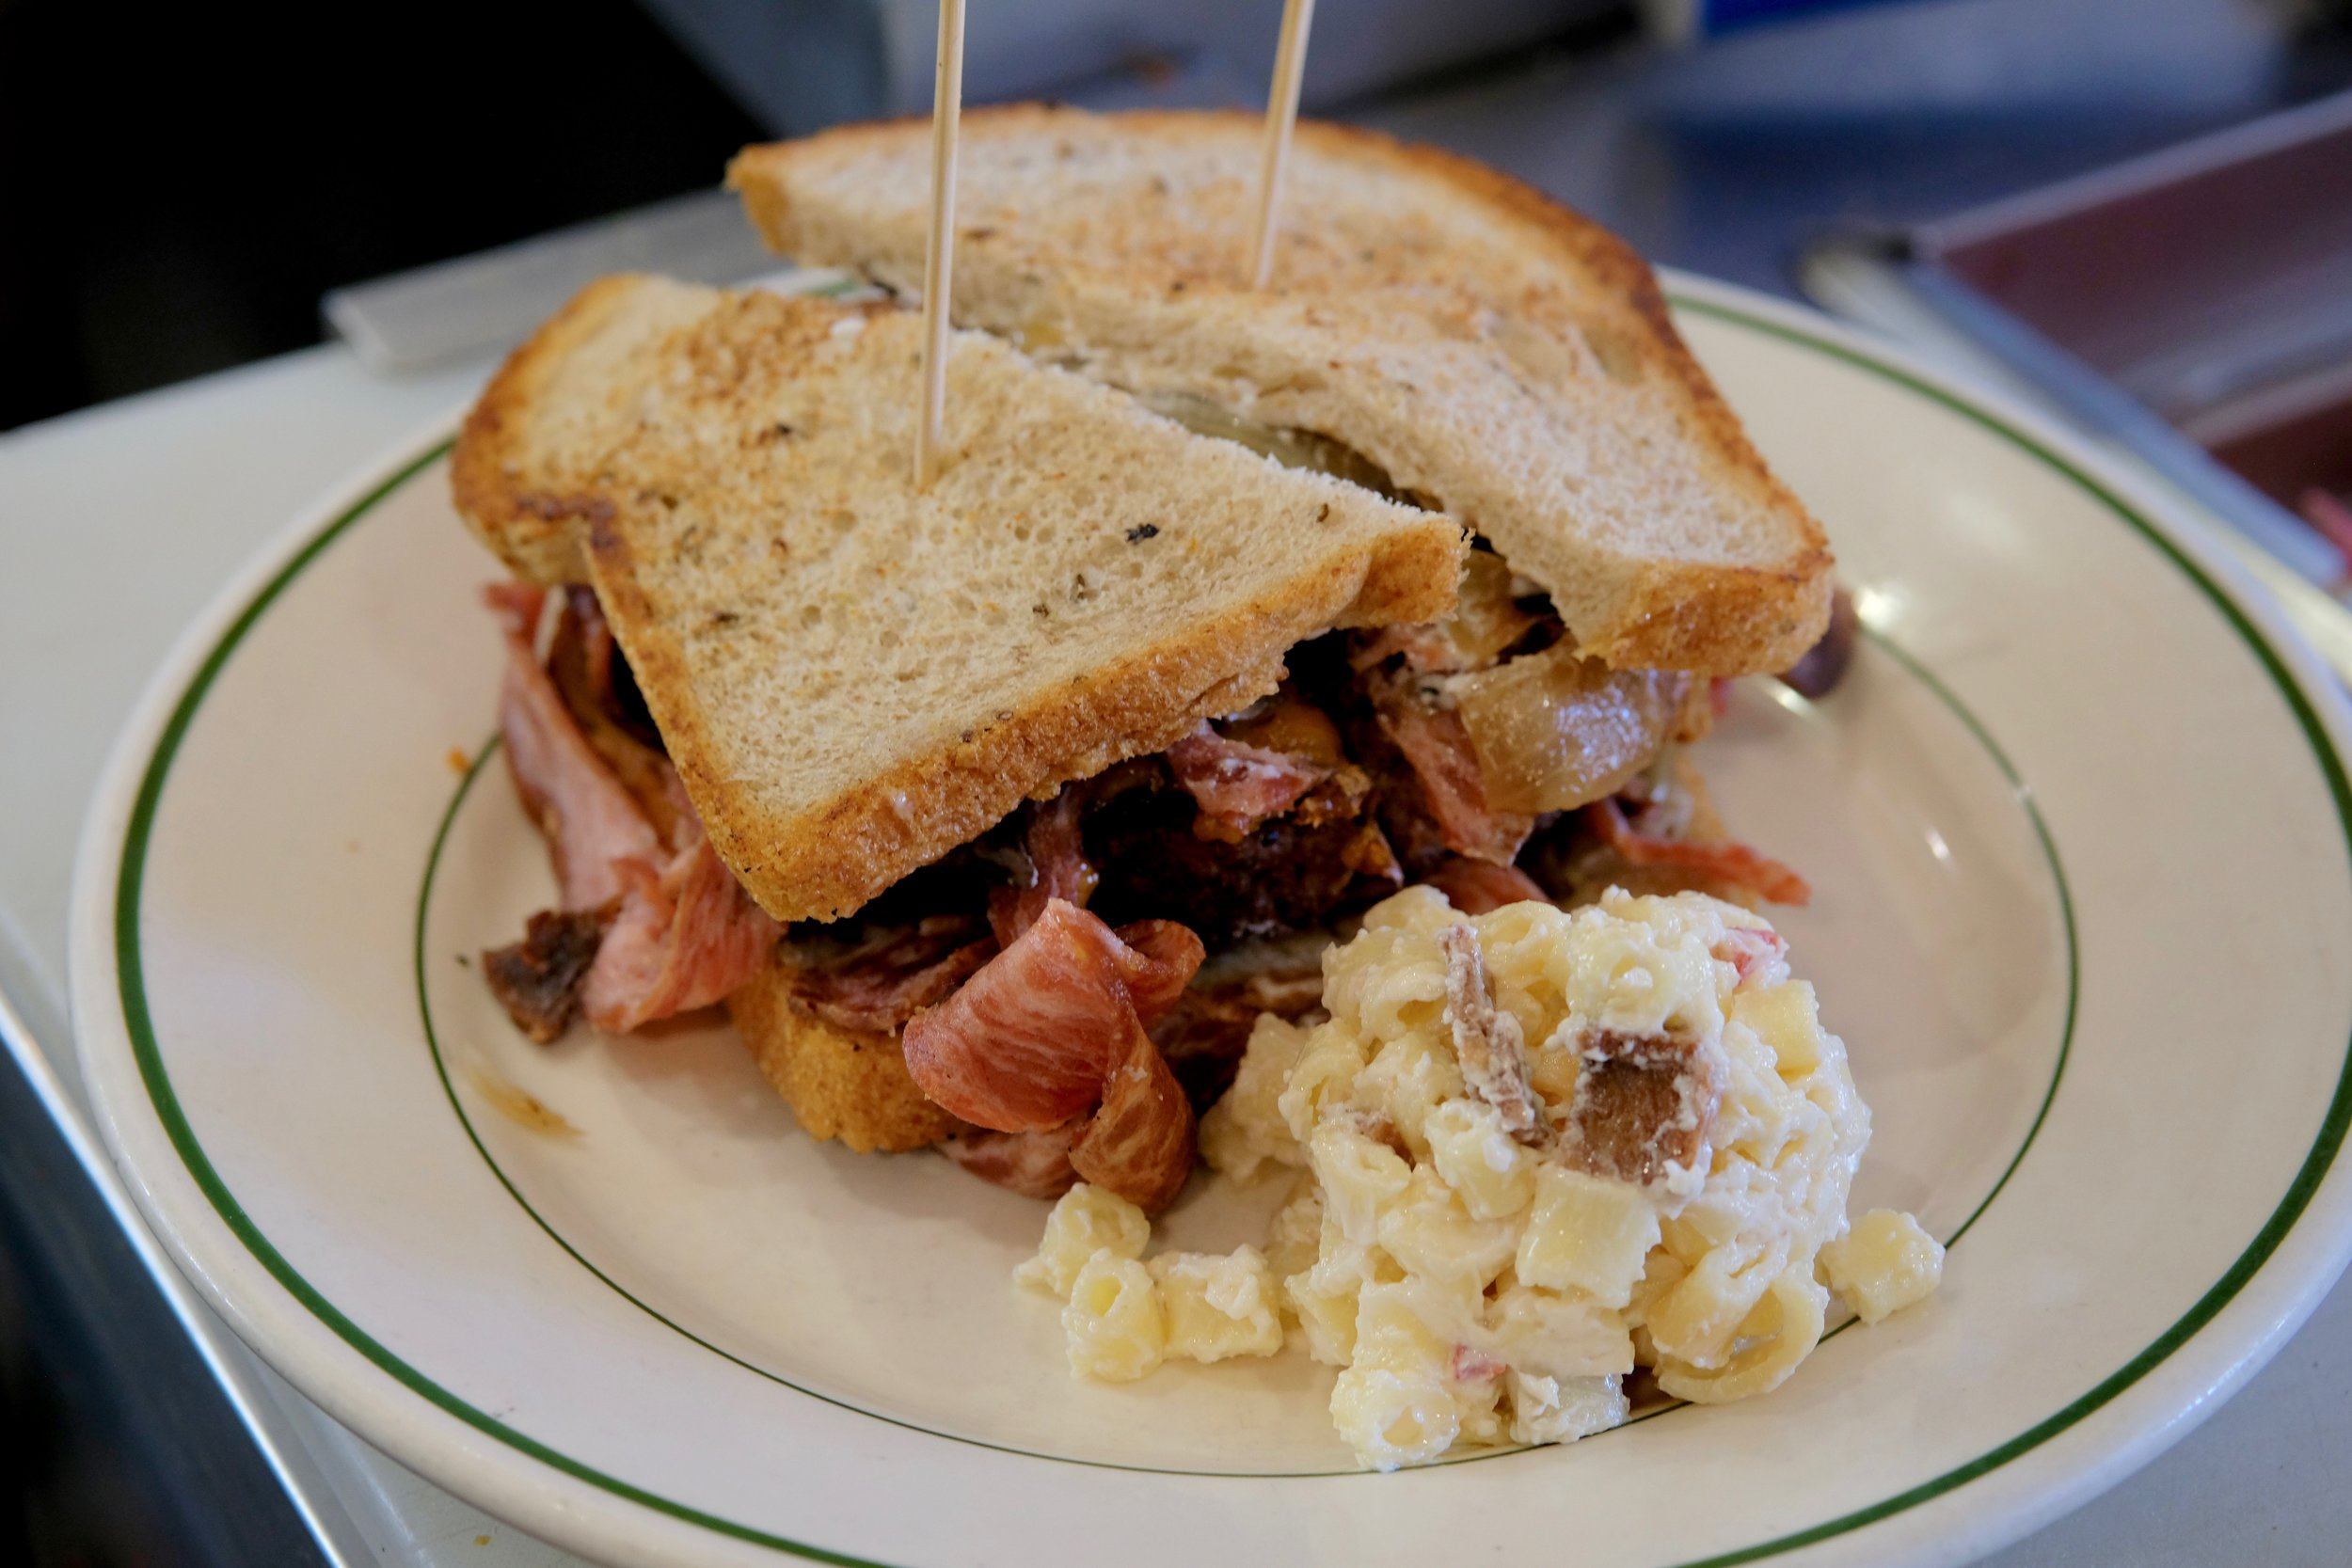 Patty Melt with a side of Bacon Macaroni Salad